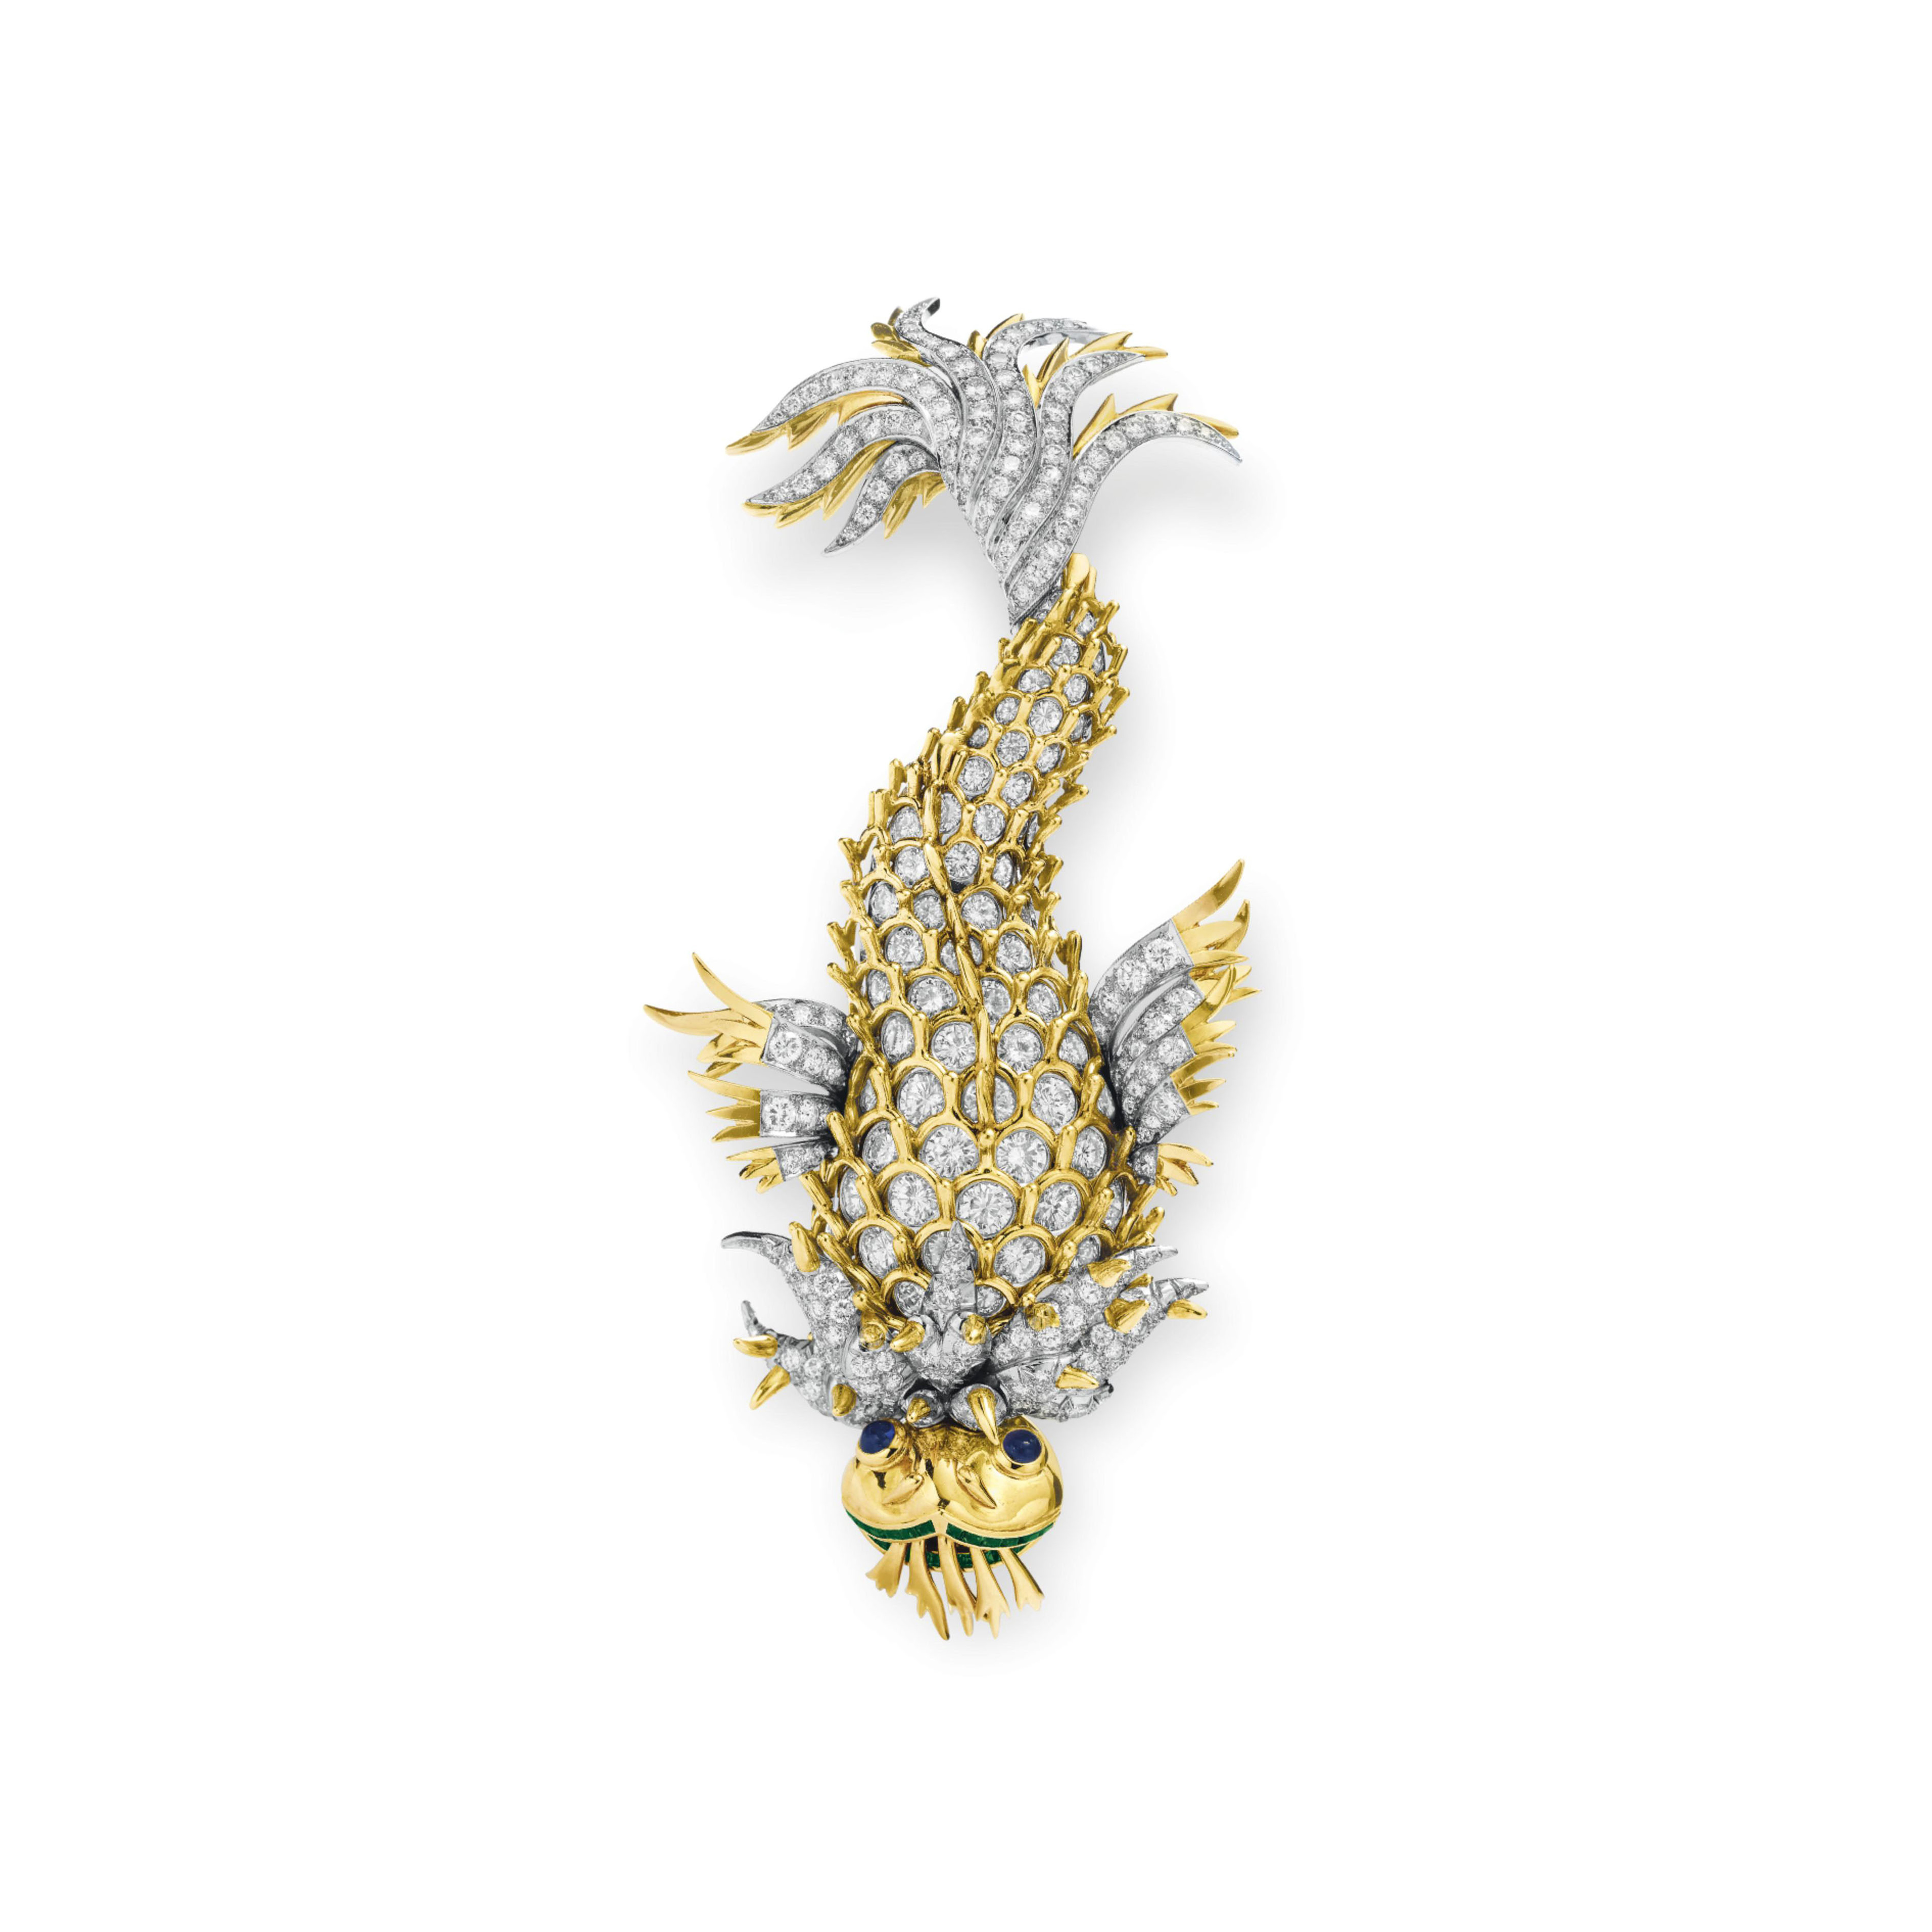 """A DIAMOND, SAPPHIRE AND EMERALD """"DOLPHIN"""" BROOCH, BY JEAN SCHLUMBERGER, TIFFANY & CO."""